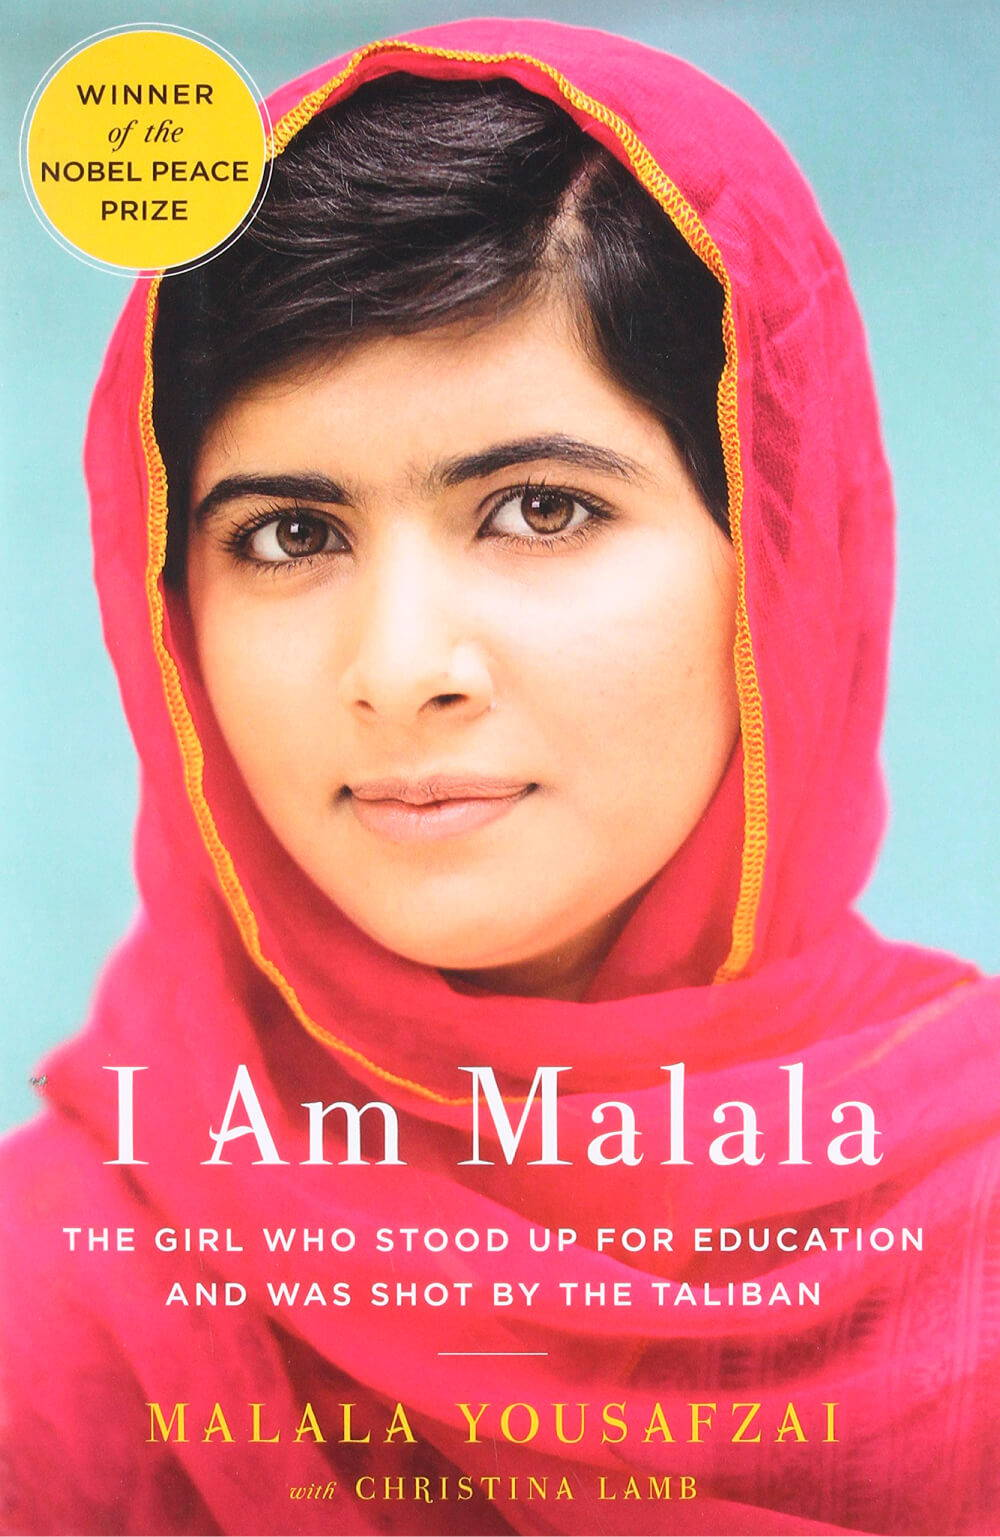 Summer Reading List 2018 I am malala